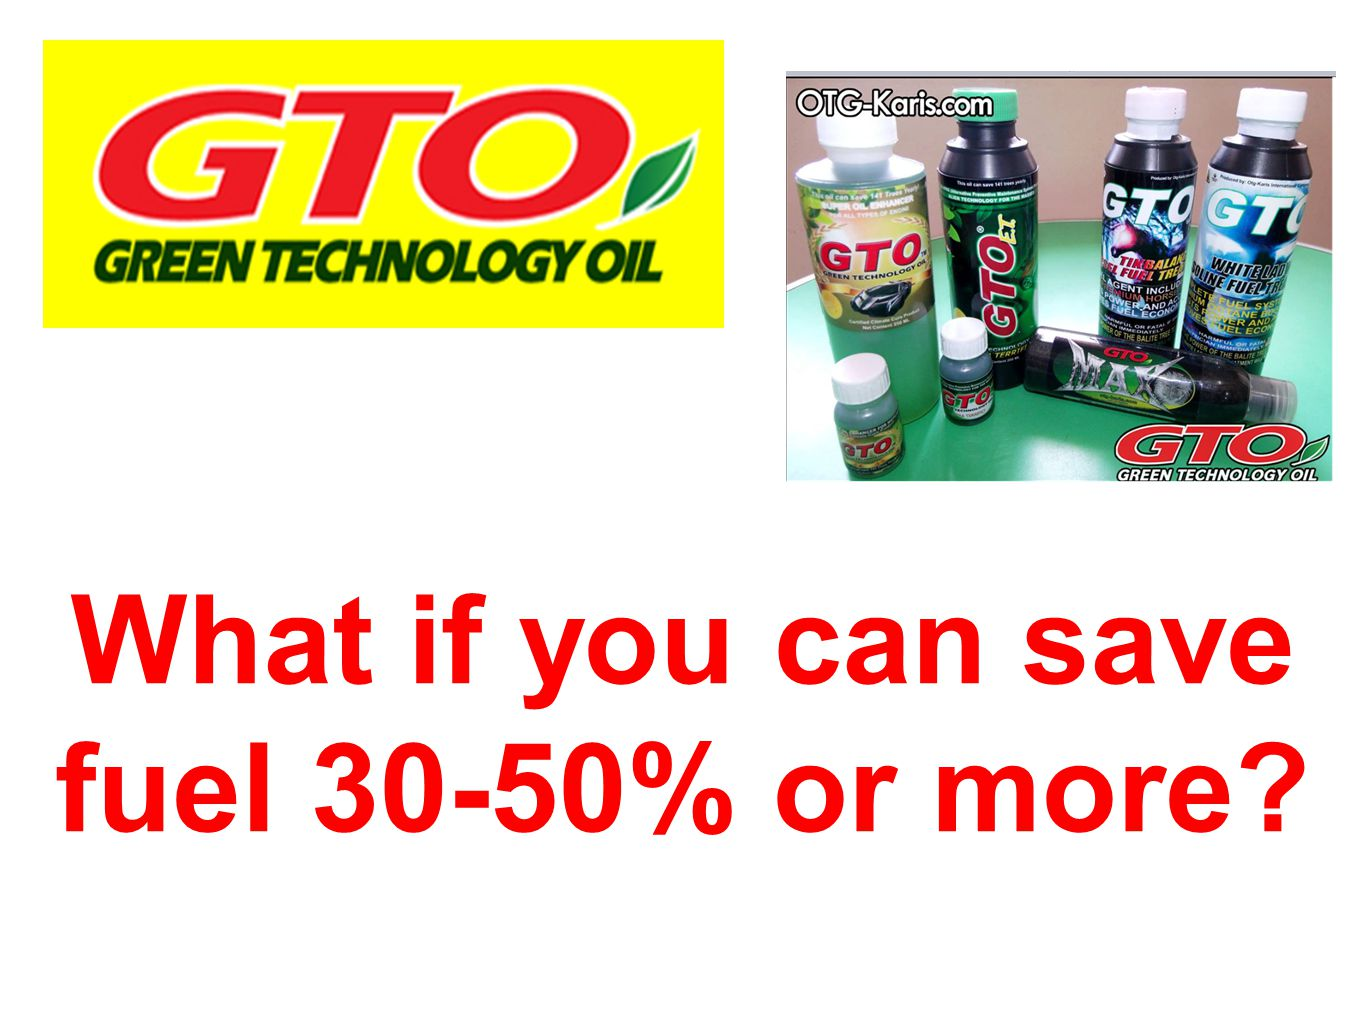 What if you can save fuel 30-50% or more